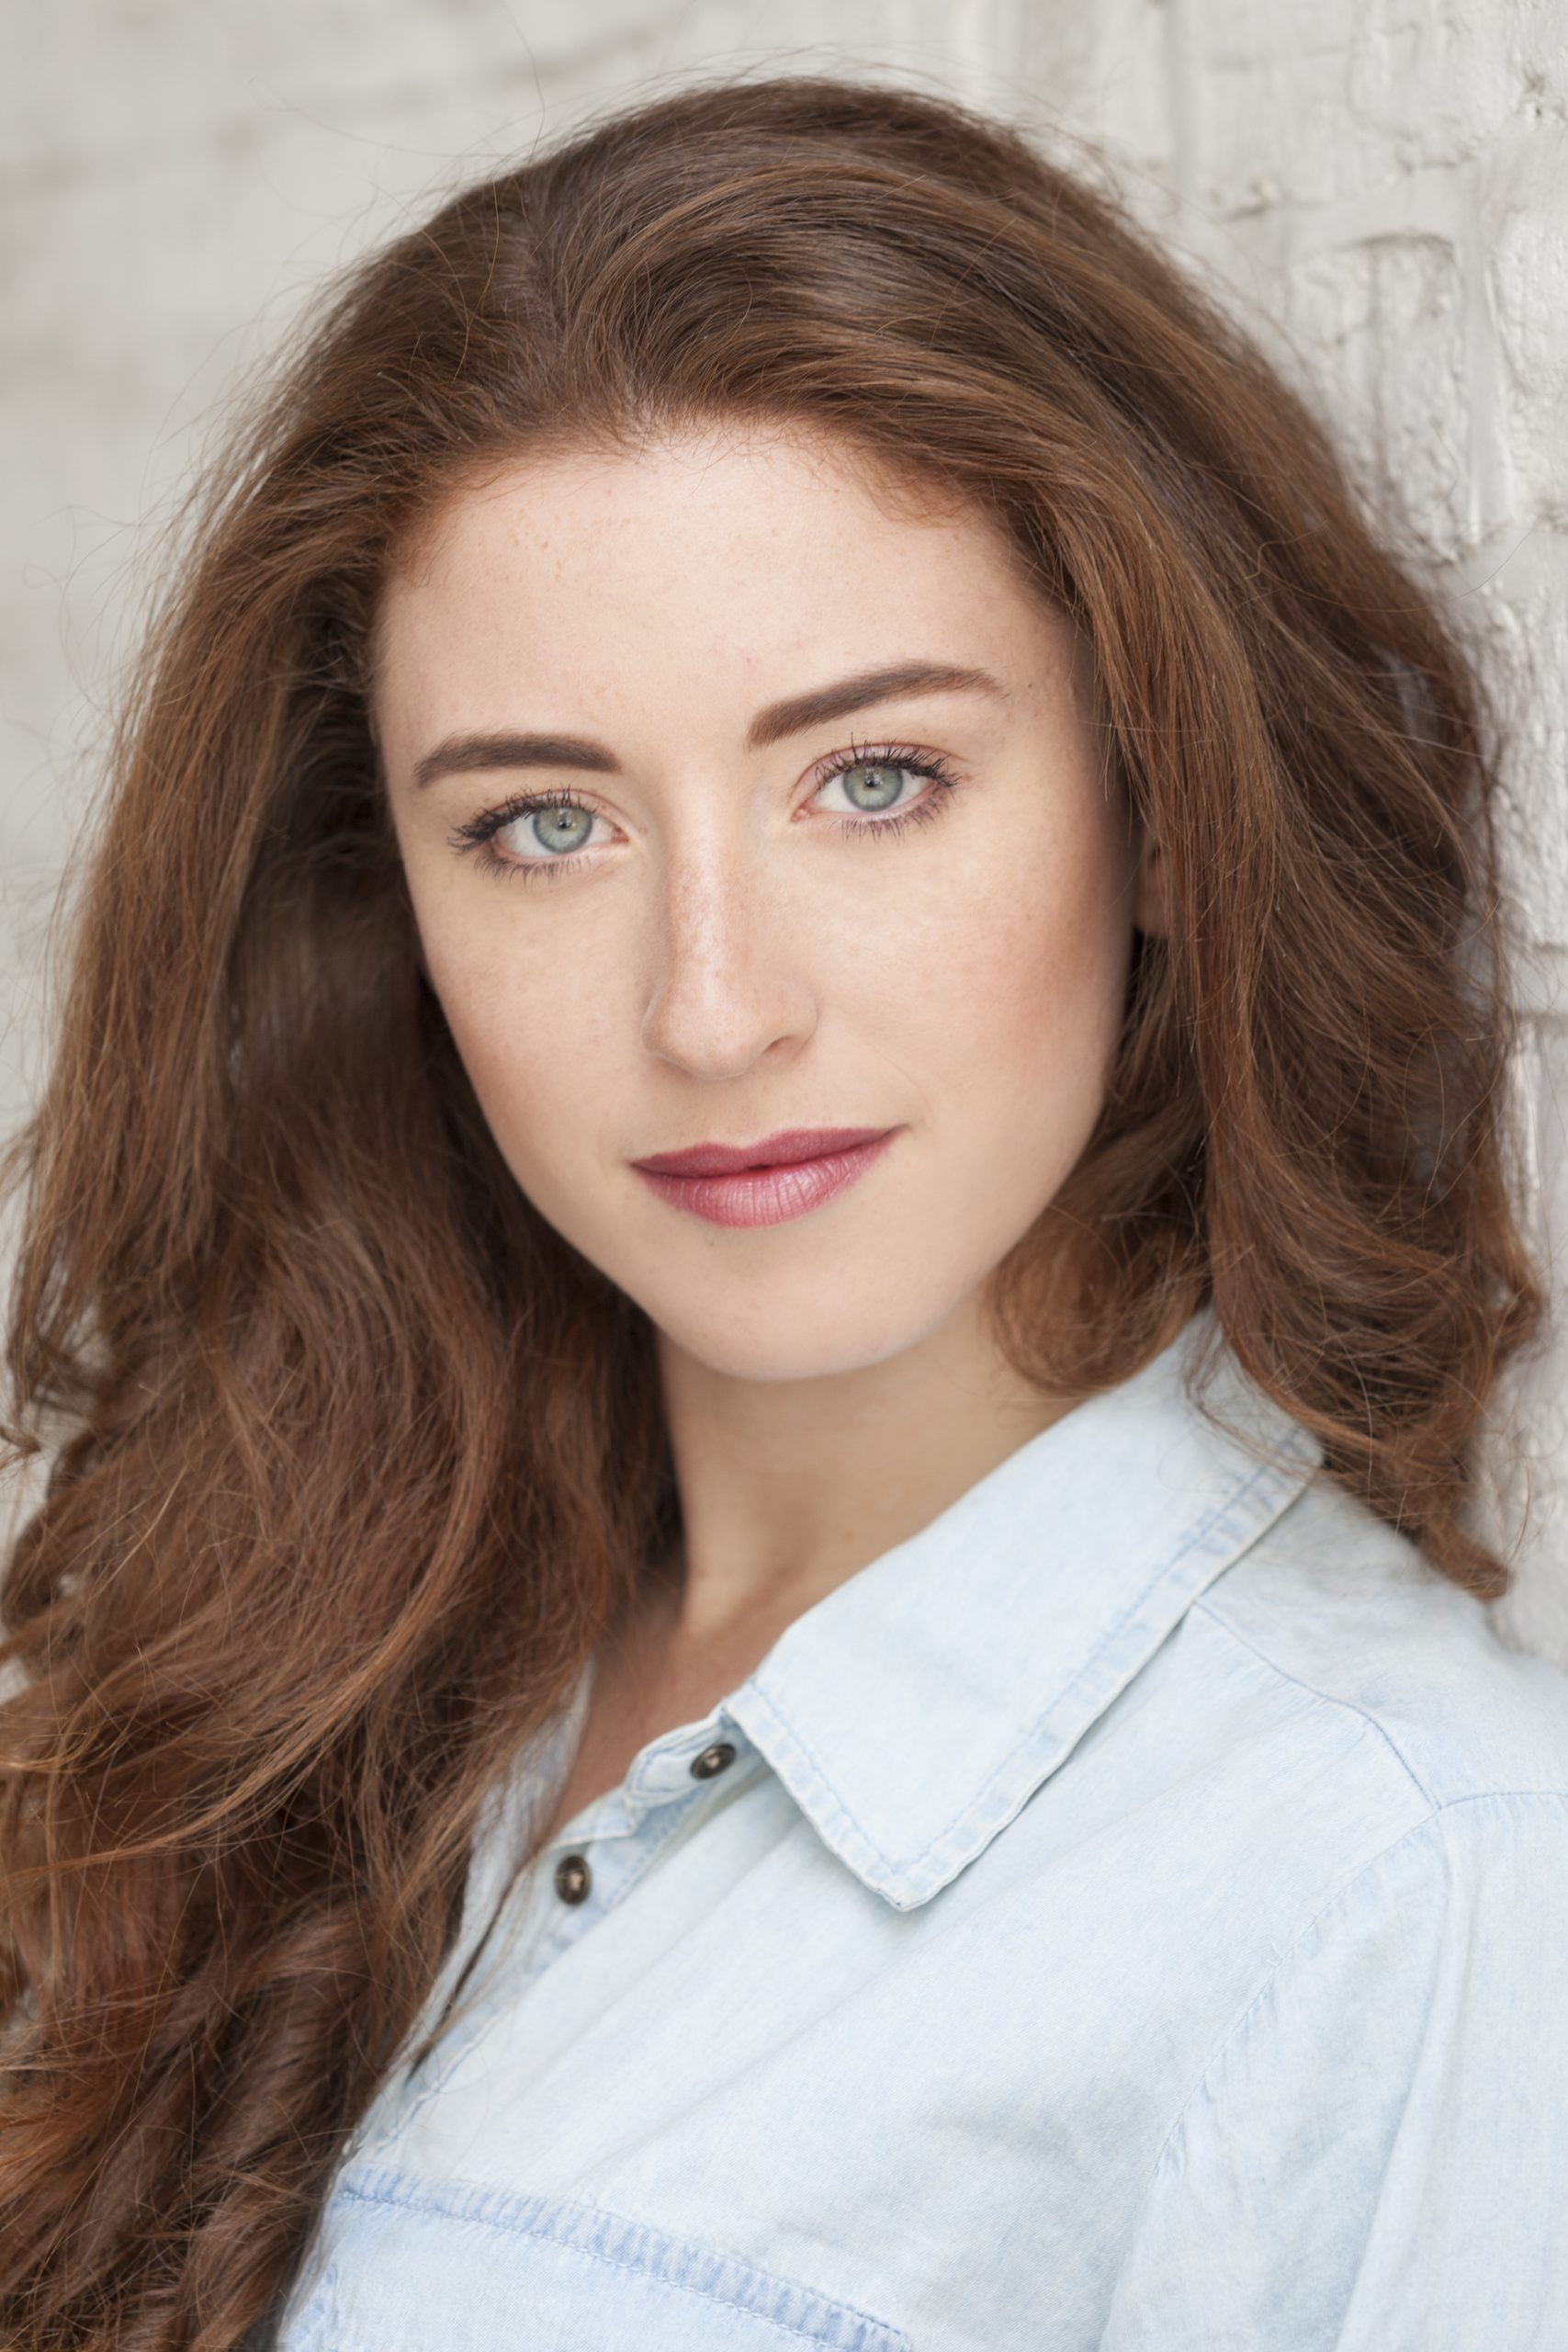 Actress Headshots in London